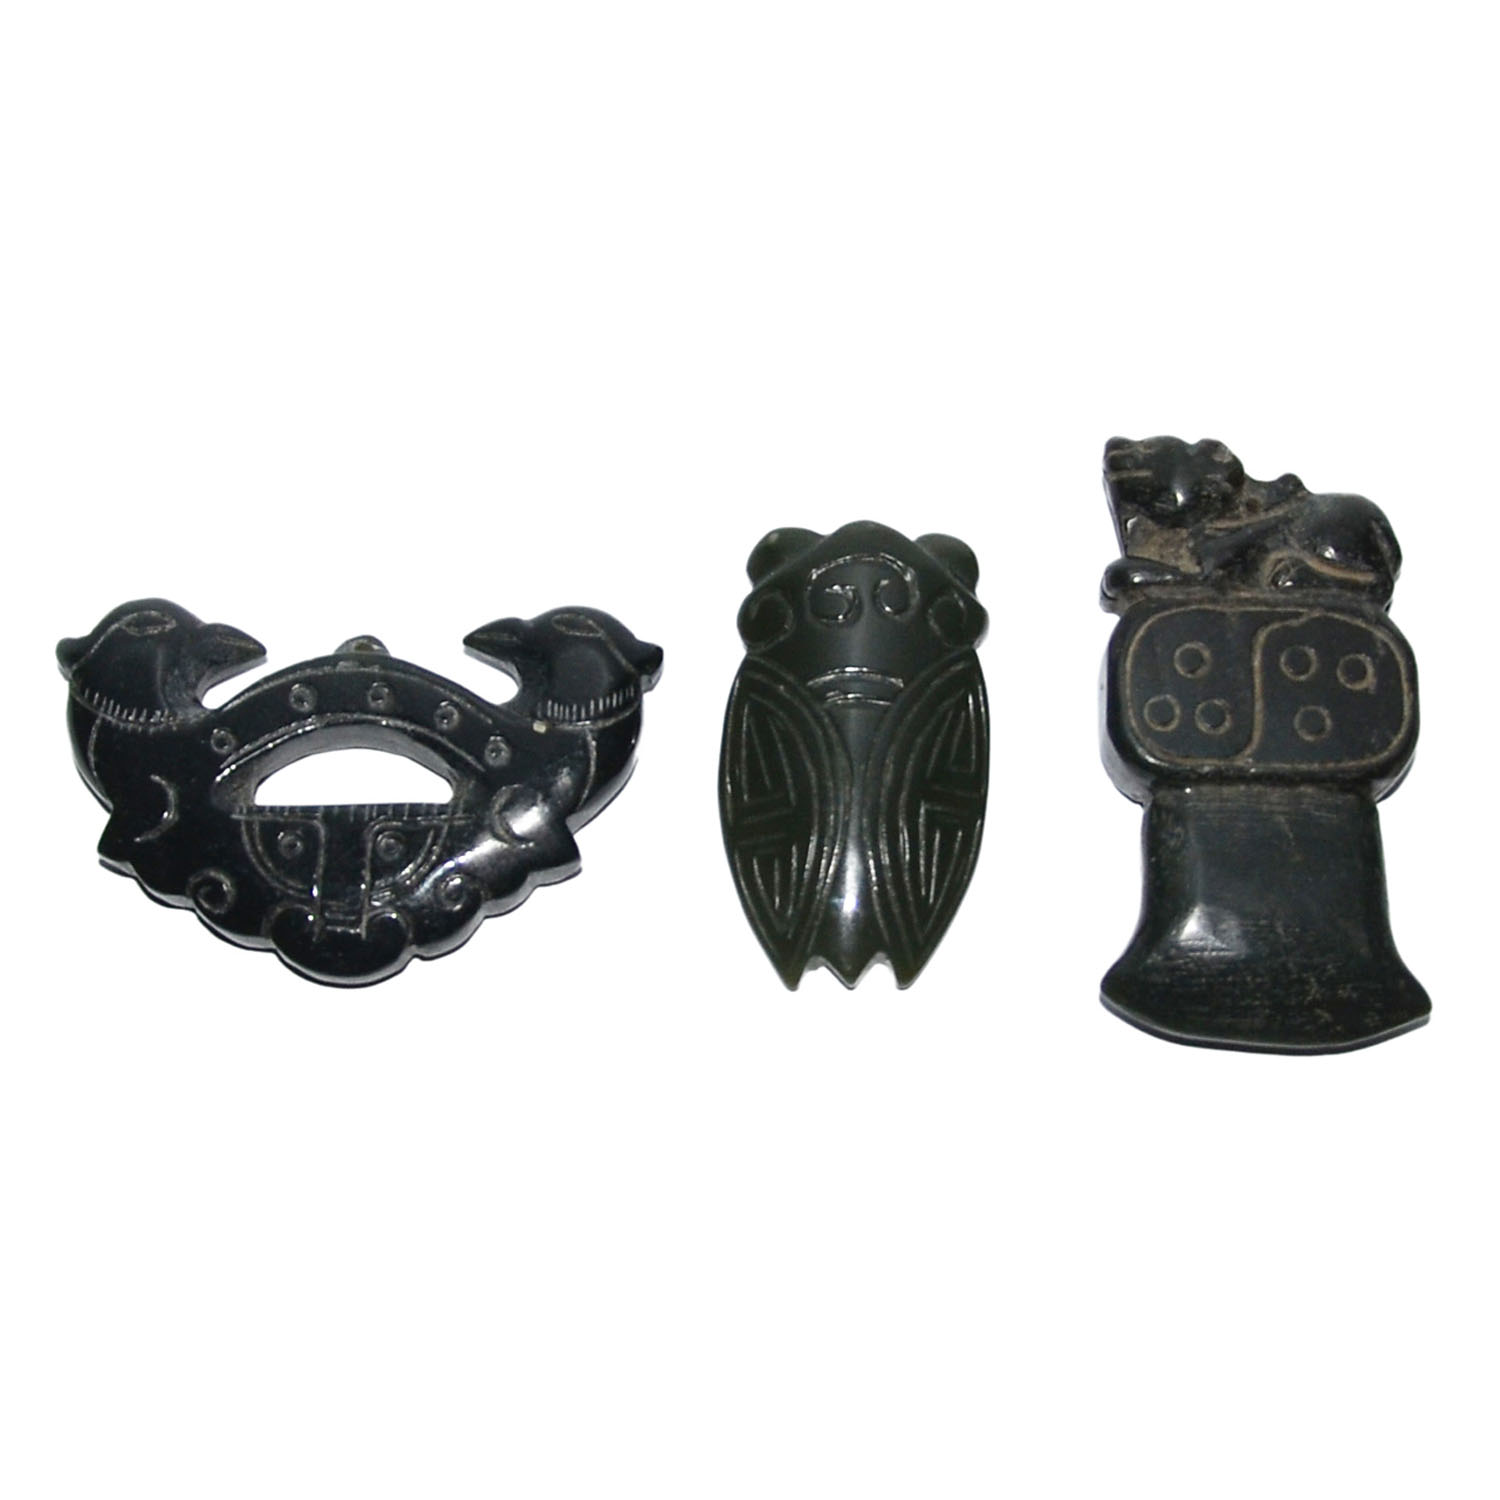 Lot 31 - 墨玉雕鳥、蟬、斧一組三件 Three Dark Jade Carved Ornaments: Cicada, Mythical Bird and Ritual Ax  Length: 2⅜ in (6